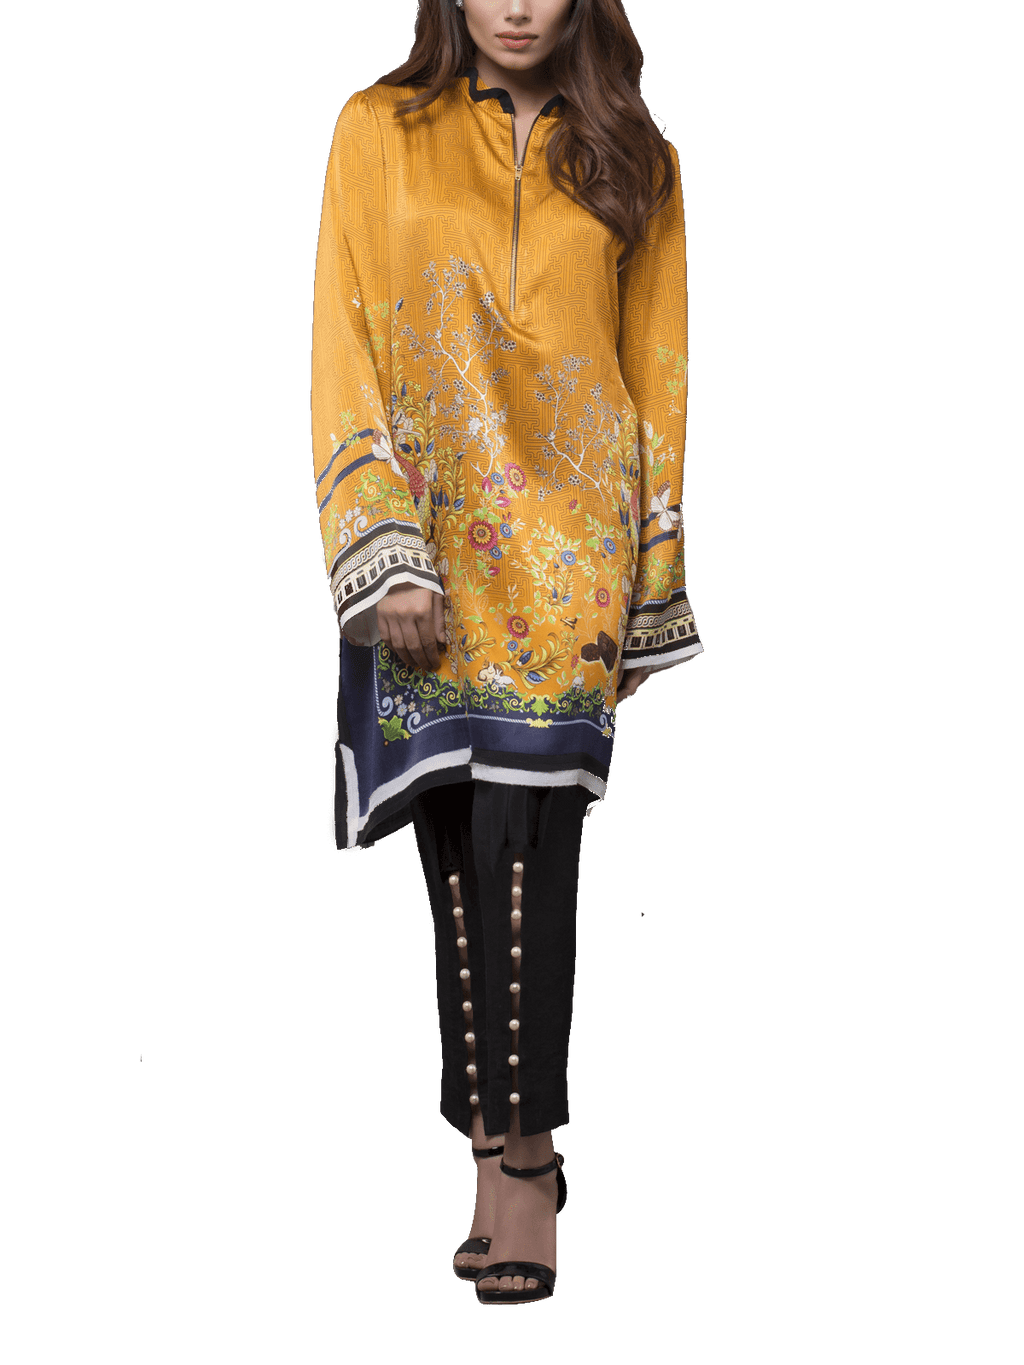 Sania Maskatiya - Digitally Printed Charmeuse Shirt With Pants